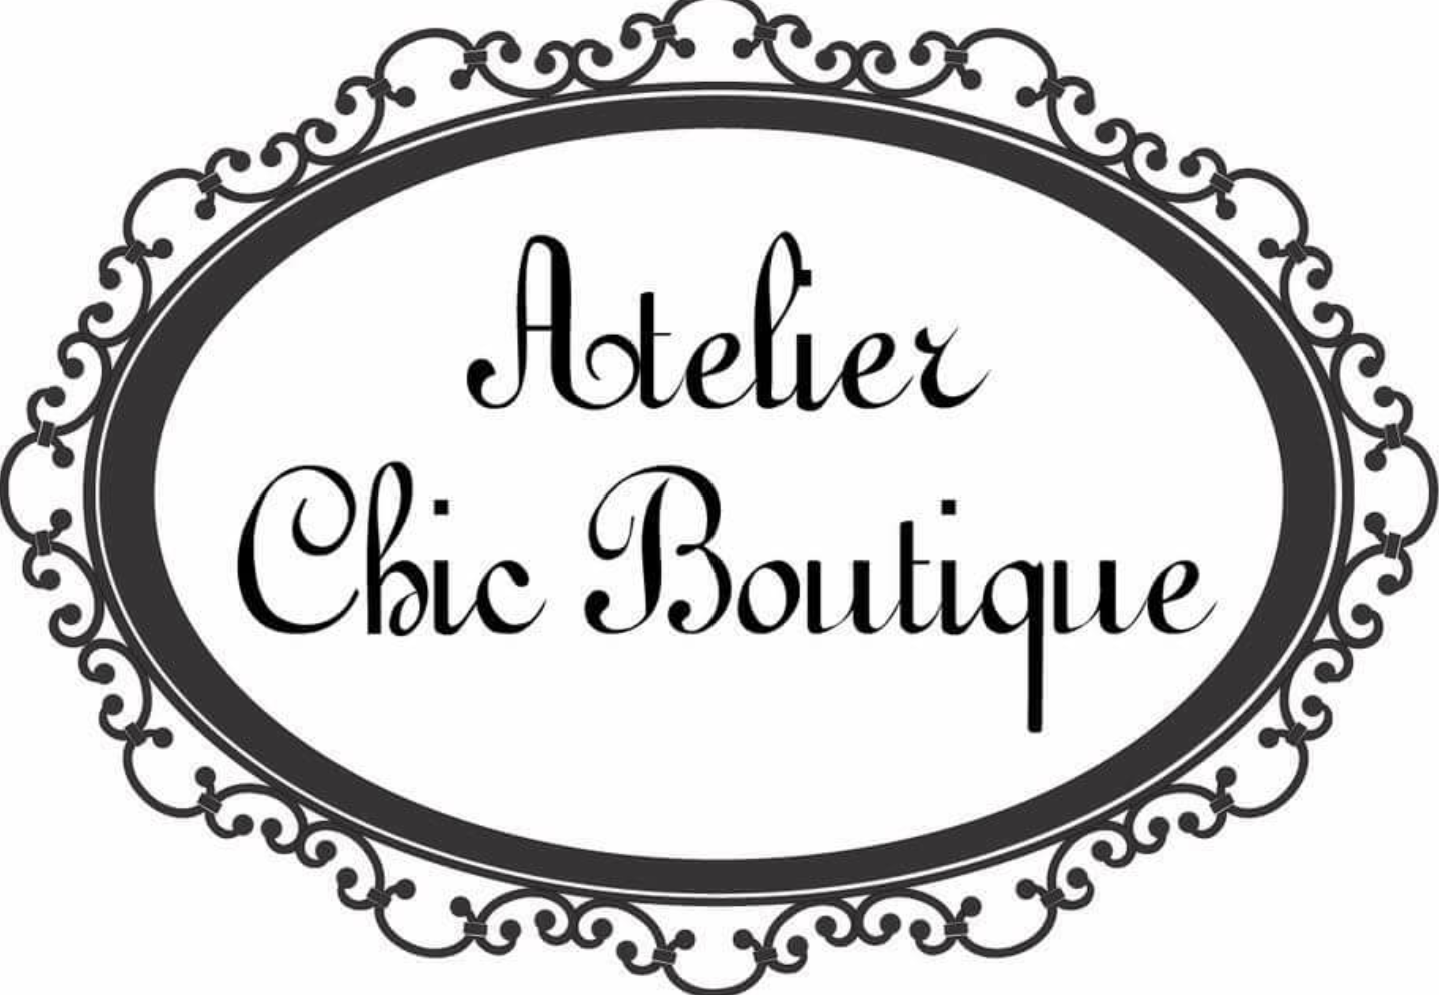 Atelier Chic Boutique